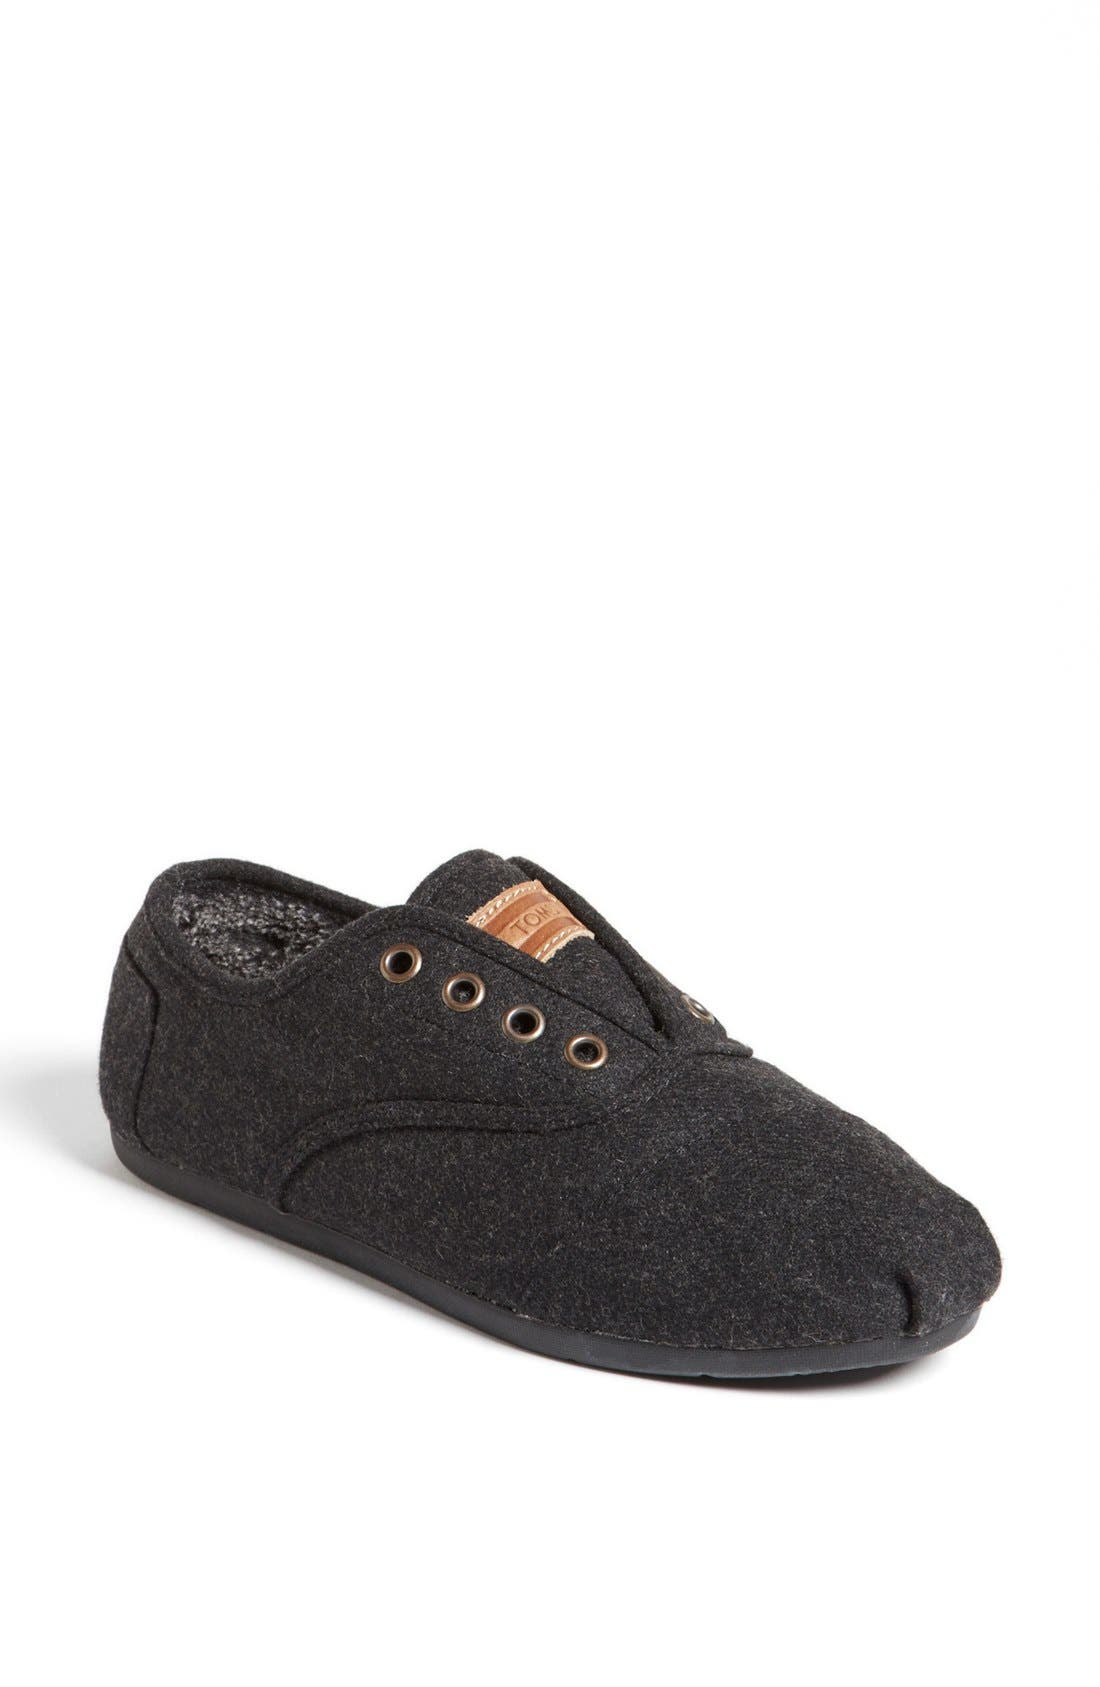 Main Image - TOMS 'Cordones' Slip-On (Women)